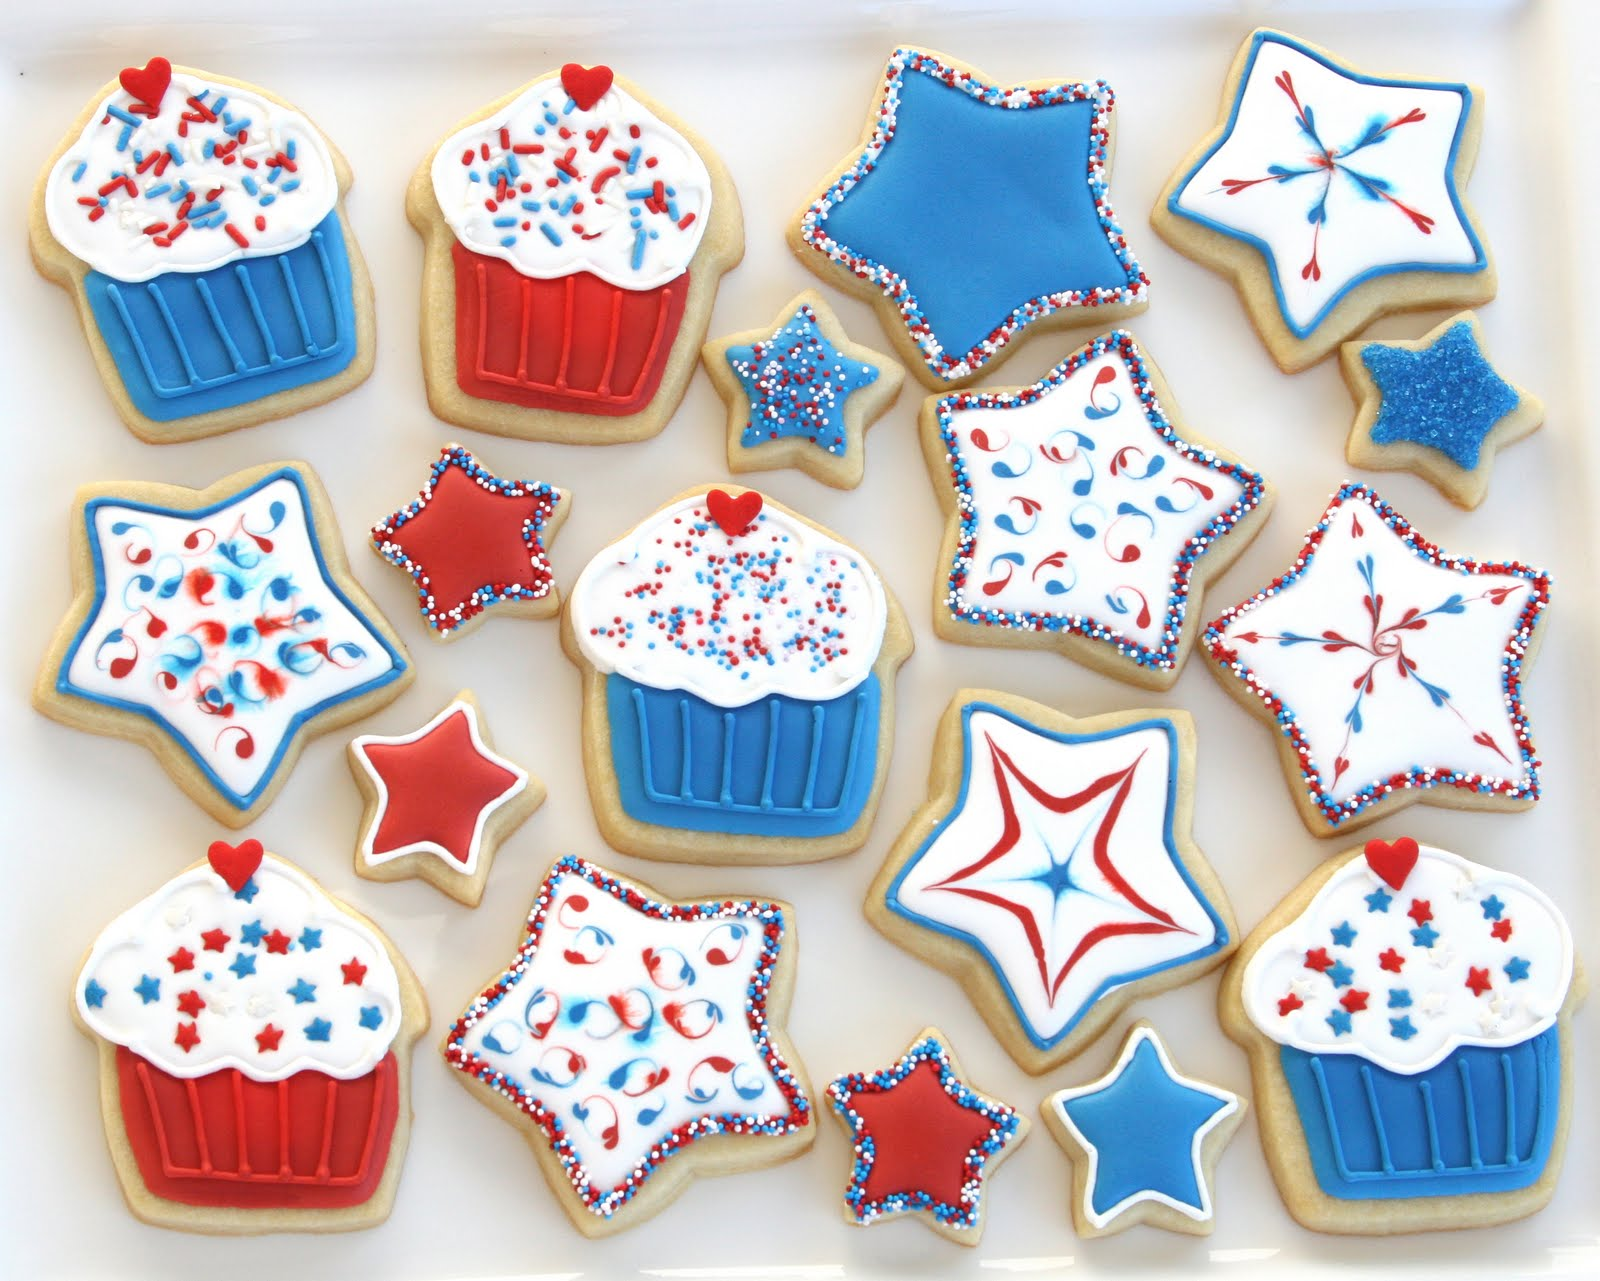 Star Sugar Cookie Designs